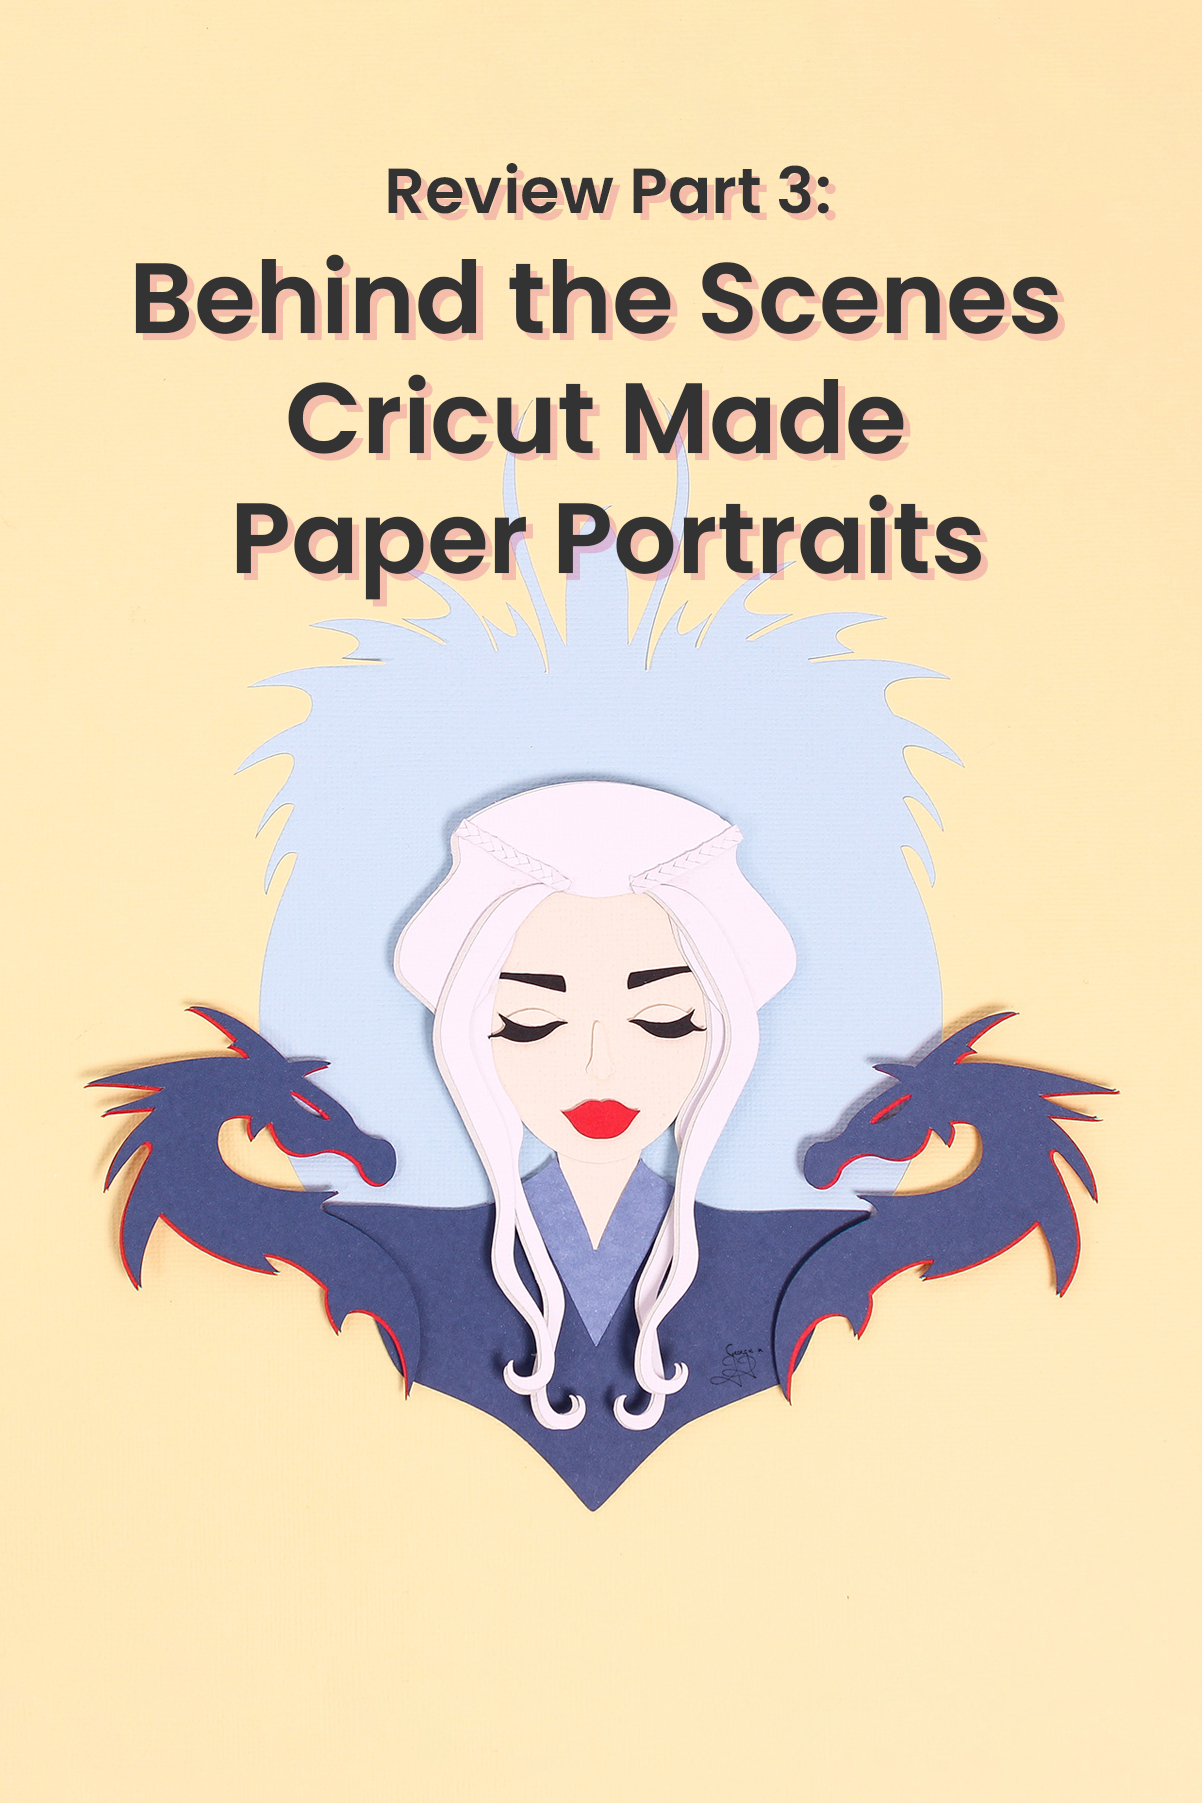 Daenerys Mother of Dragons Paper Portrait Stop Motion Animation, Behind the Scenes | Georgie St Clair, stop motion animation